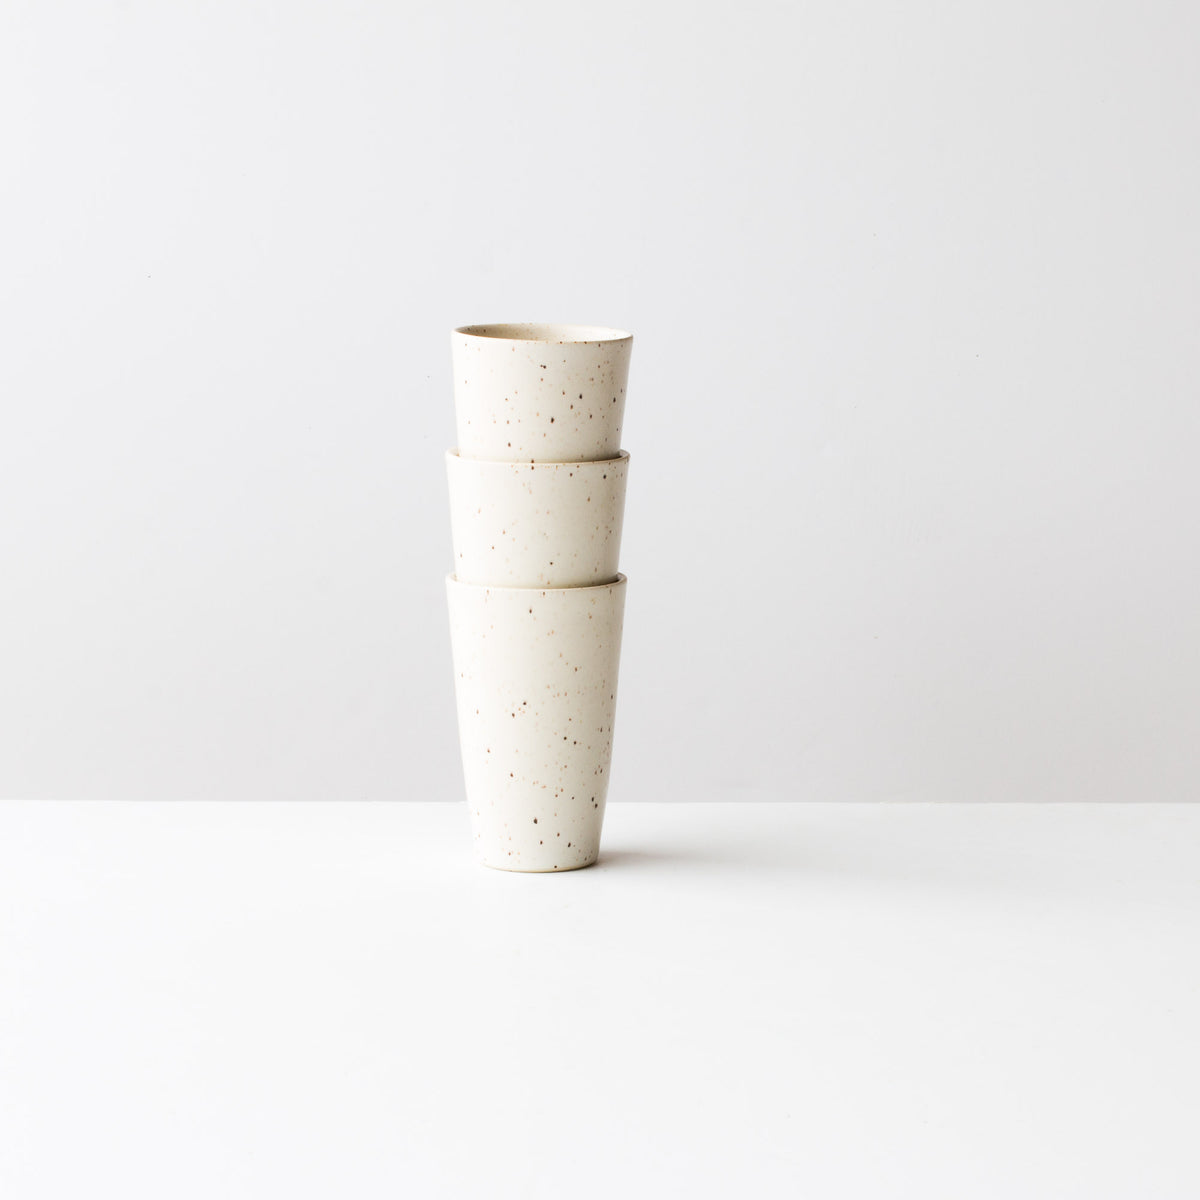 Speckled Off-White -  Three Handmade Small Ceramic Goblets / Tumblers - Sold by Chic & Basta